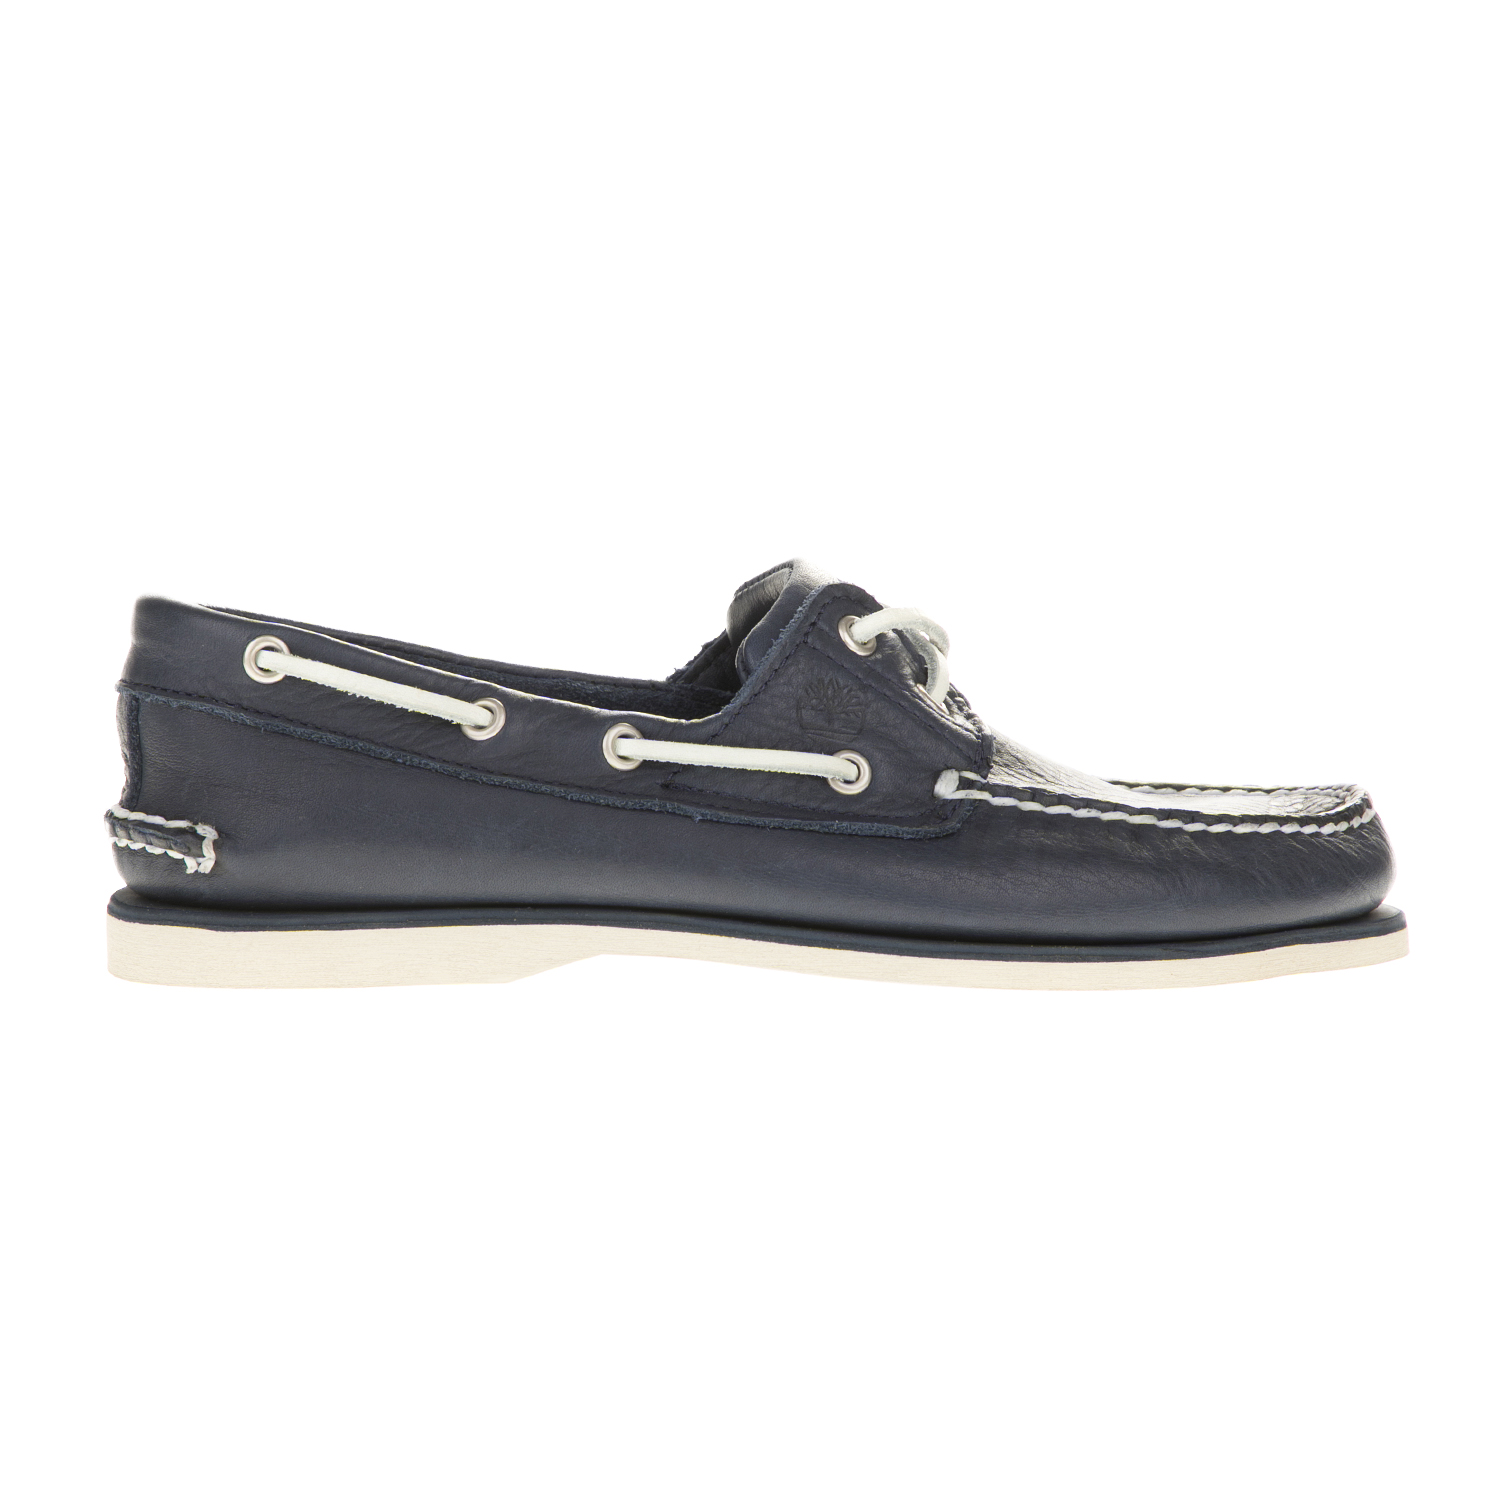 f9dec58759e TIMBERLAND - Ανδρικά boat shoes TIMBERLAND A1FHU EYE BOAT μπλε ...